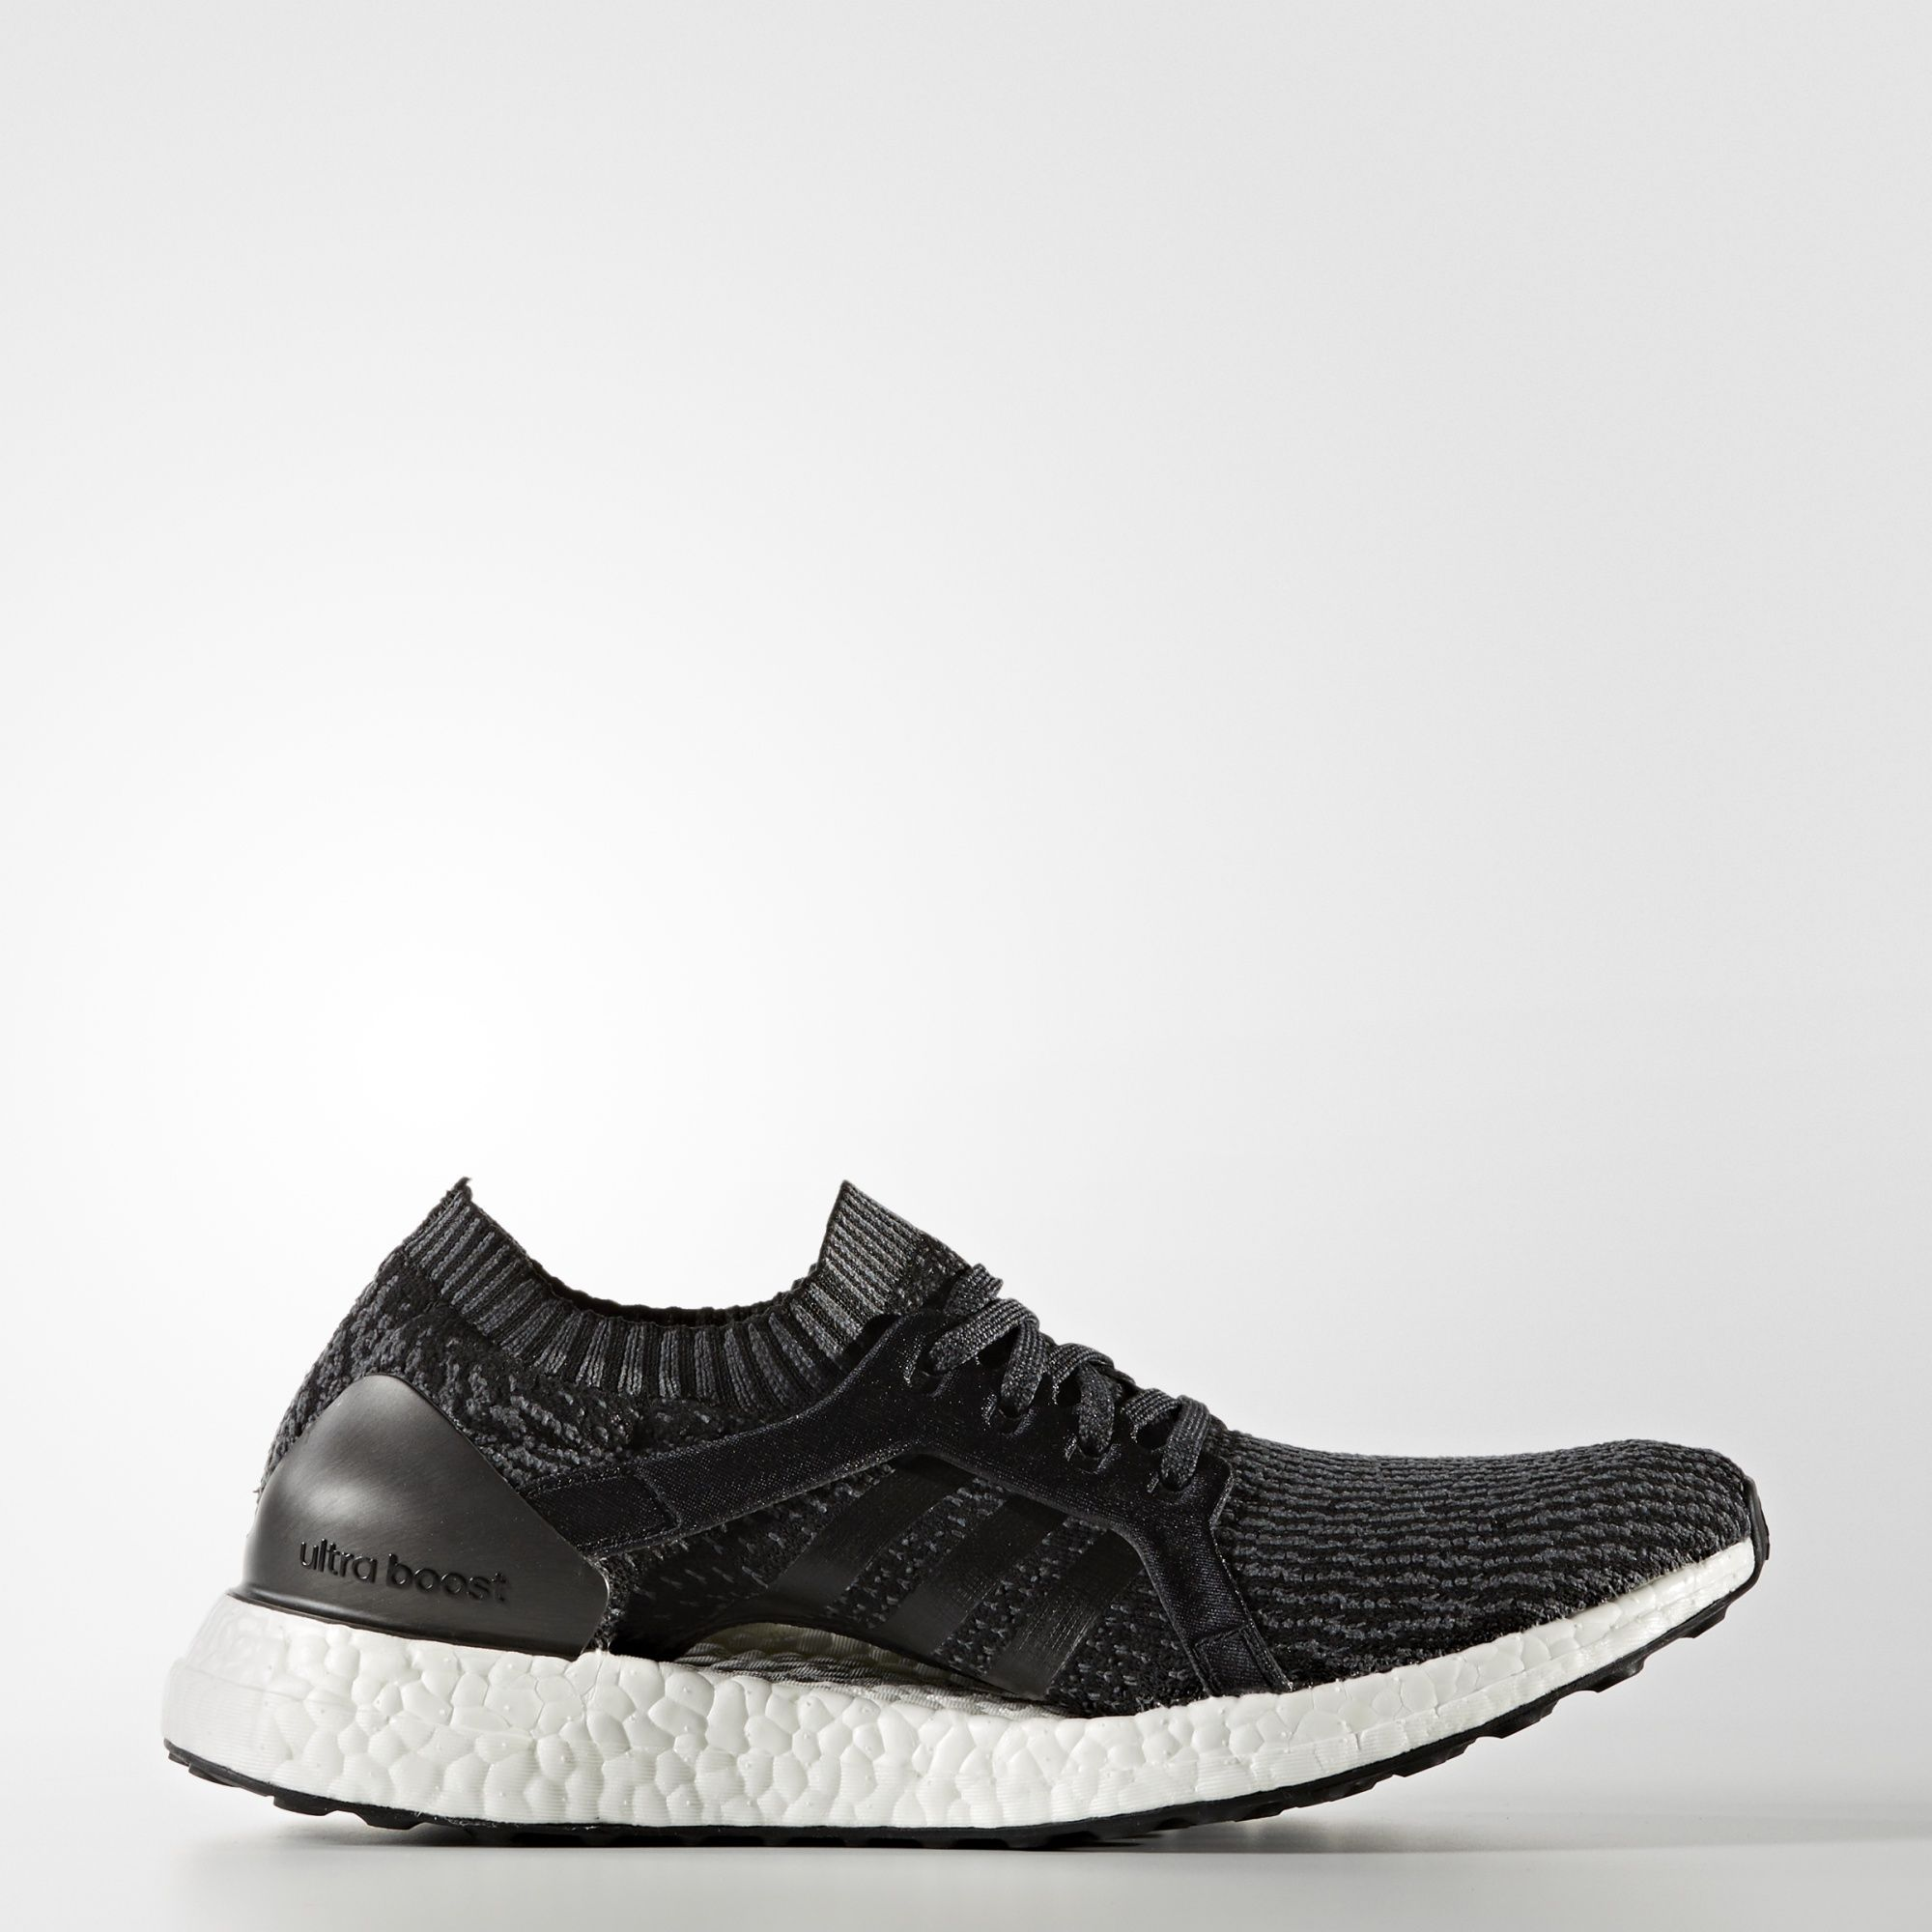 the best attitude 1fbf1 3dc59 Adidas UltraBOOST X shoes in the color Core Black  Solid Grey  Onix  (BB1696)